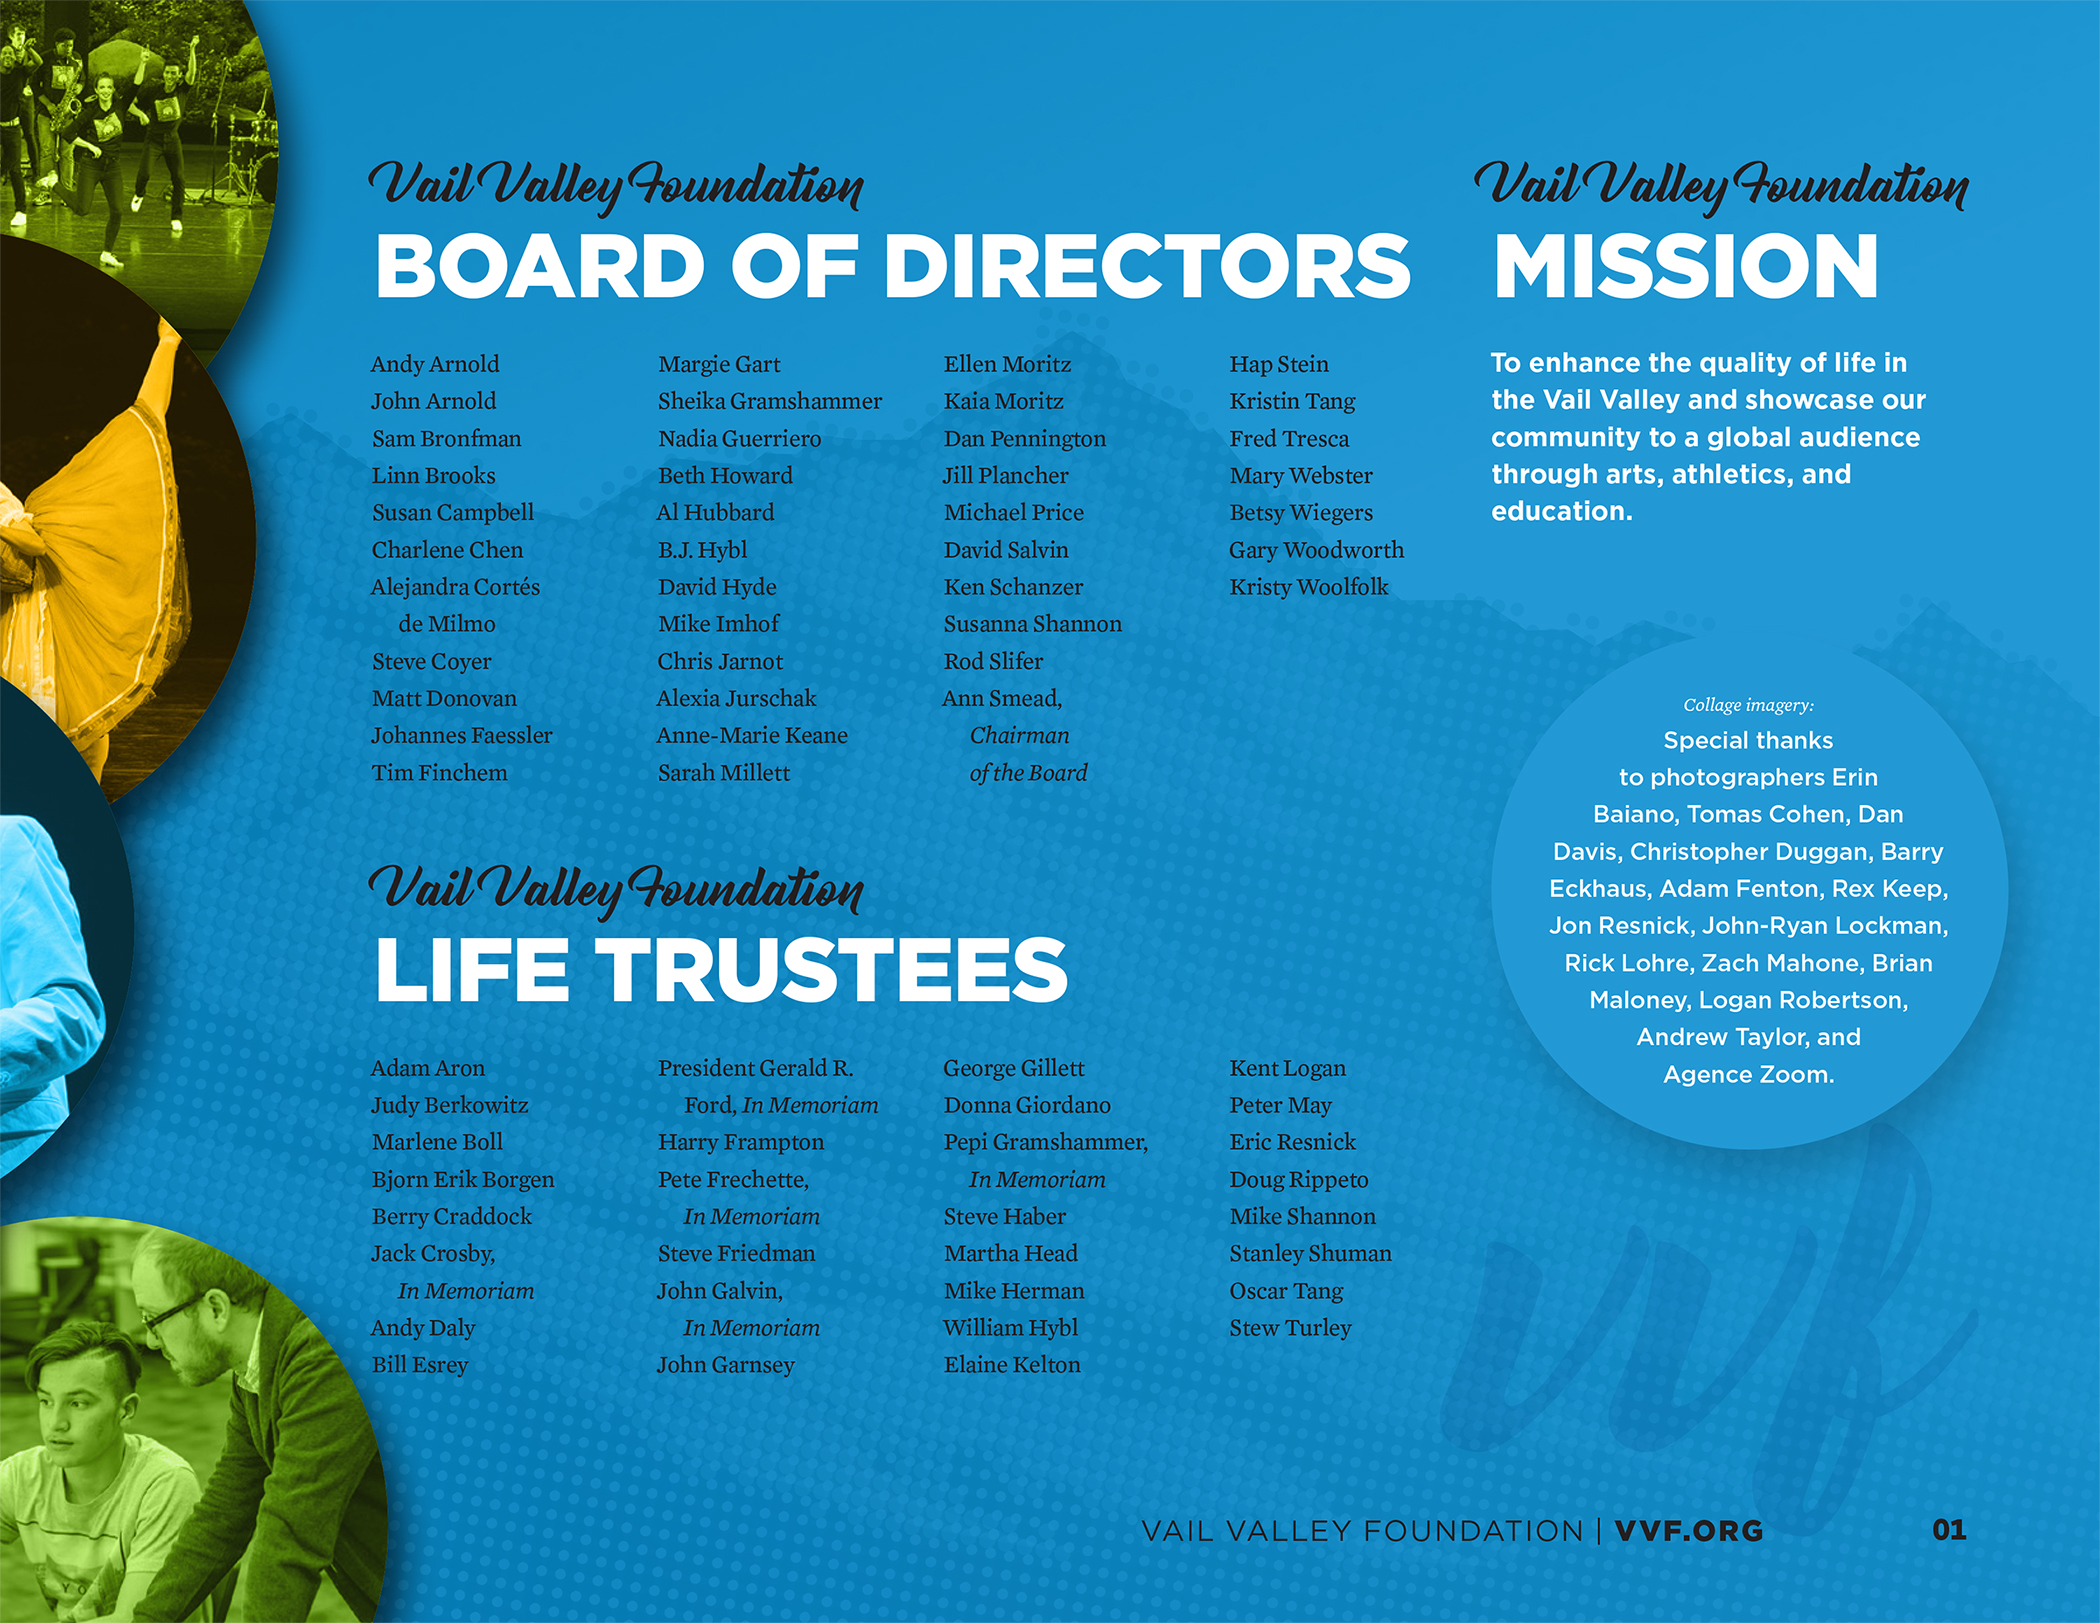 Vail Valley Foundation Board of Directors 2019